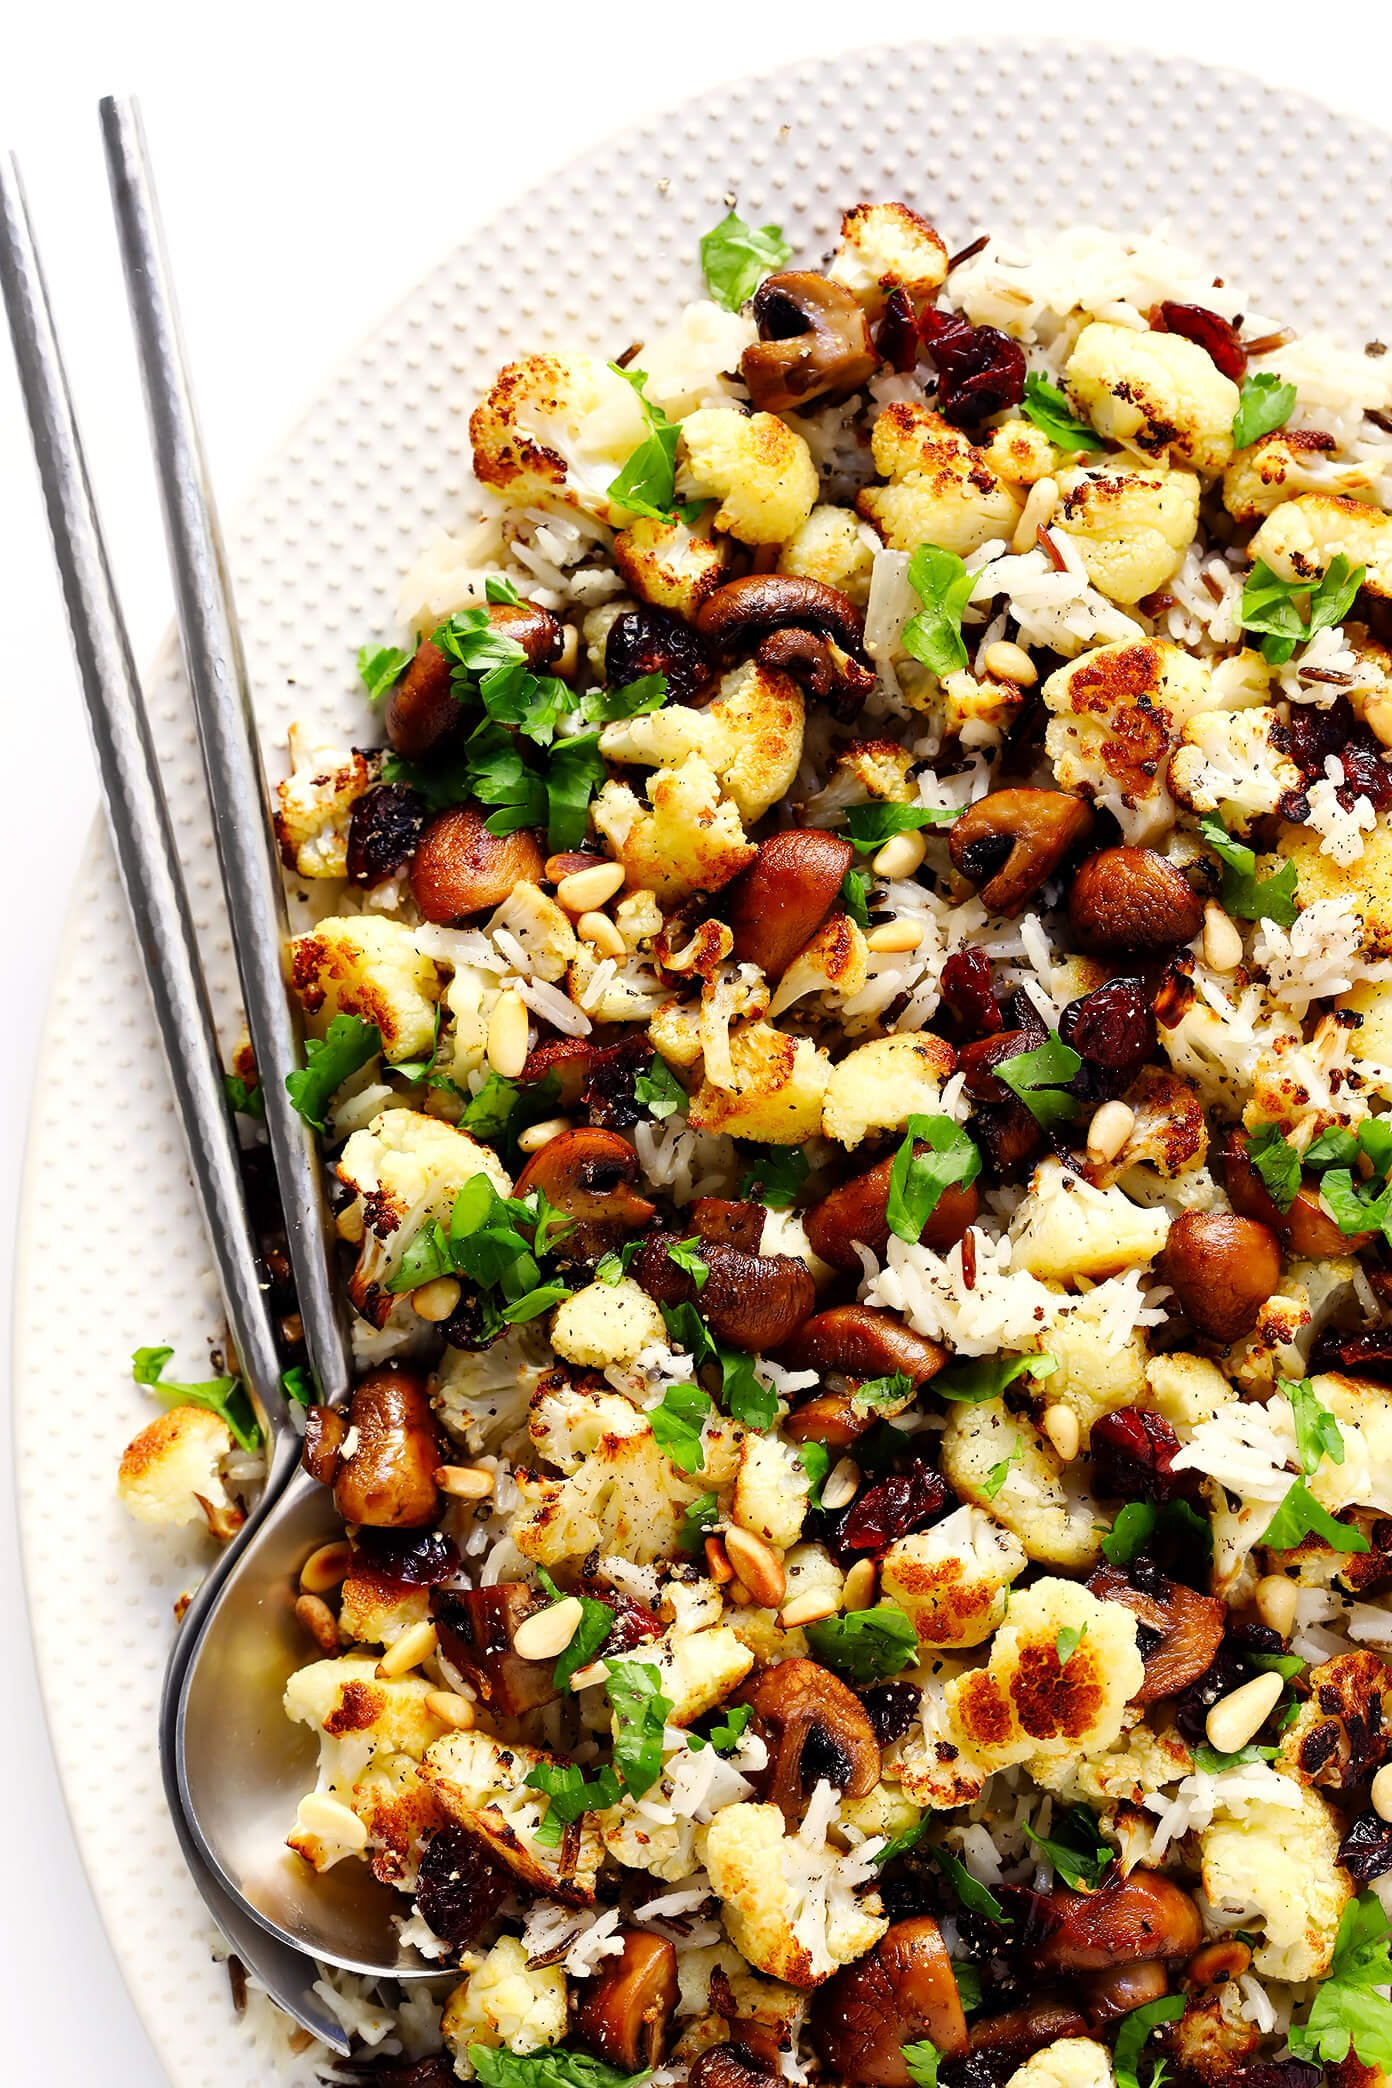 "This Roasted Cauliflower, Mushroom and Wild Rice ""Stuffing"" is the perfect recipe to serve as a Thanksgiving side dish...or as dinner any night of the year! It's naturally gluten-free, vegetarian and vegan. It's made with delicious lemon-garlic rice, dried cranberries, toasted pine nuts, and roasted veggies. And it's AWESOME."